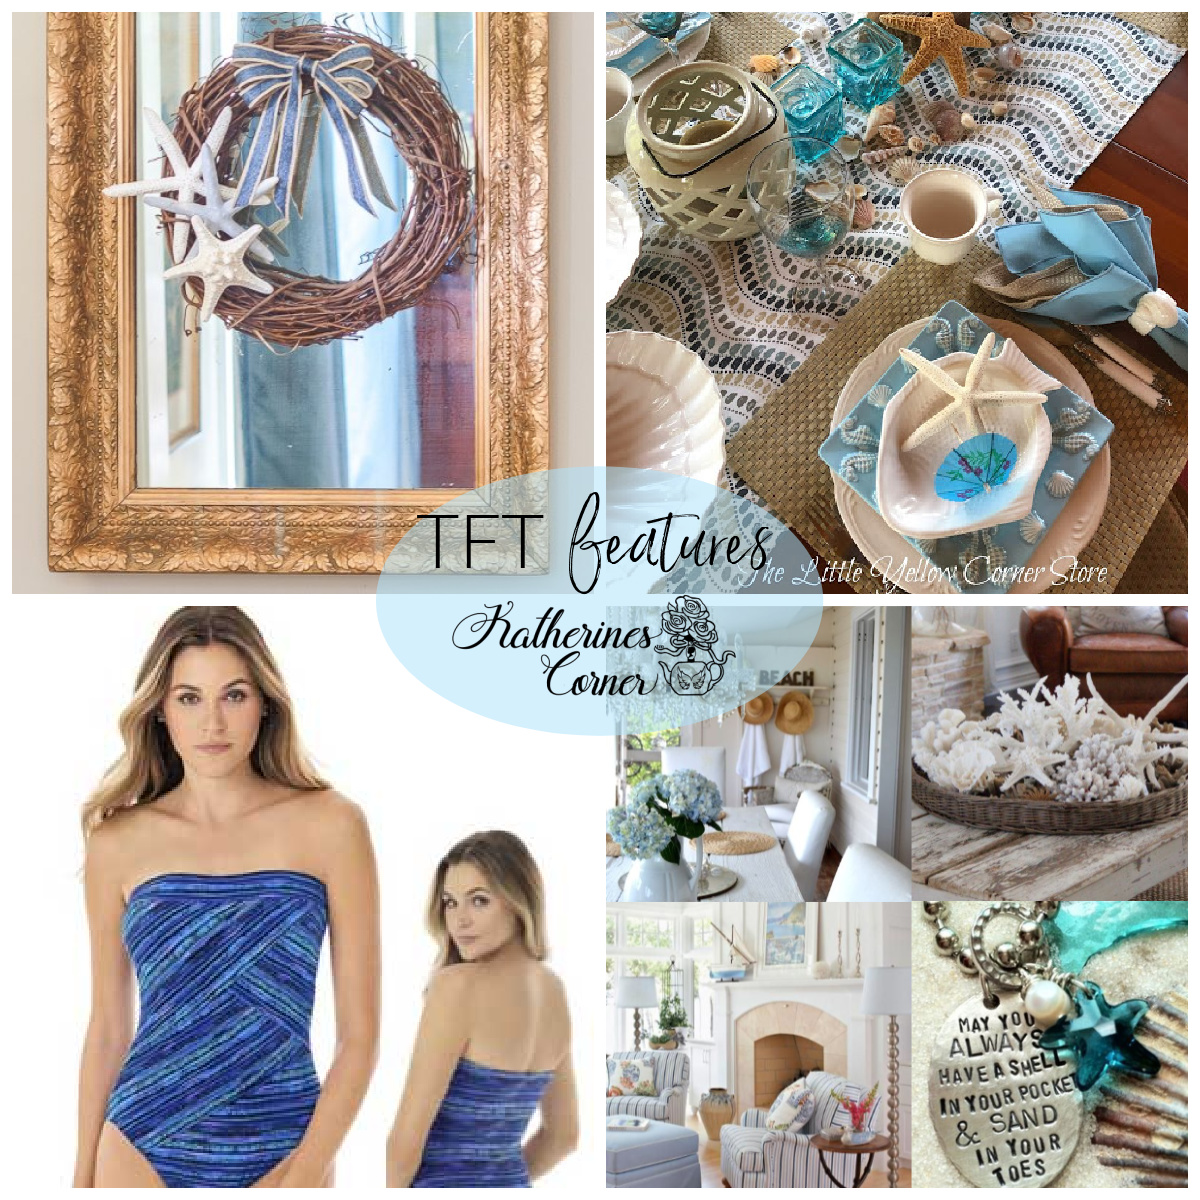 By the Sea and the TFT Blog Hop